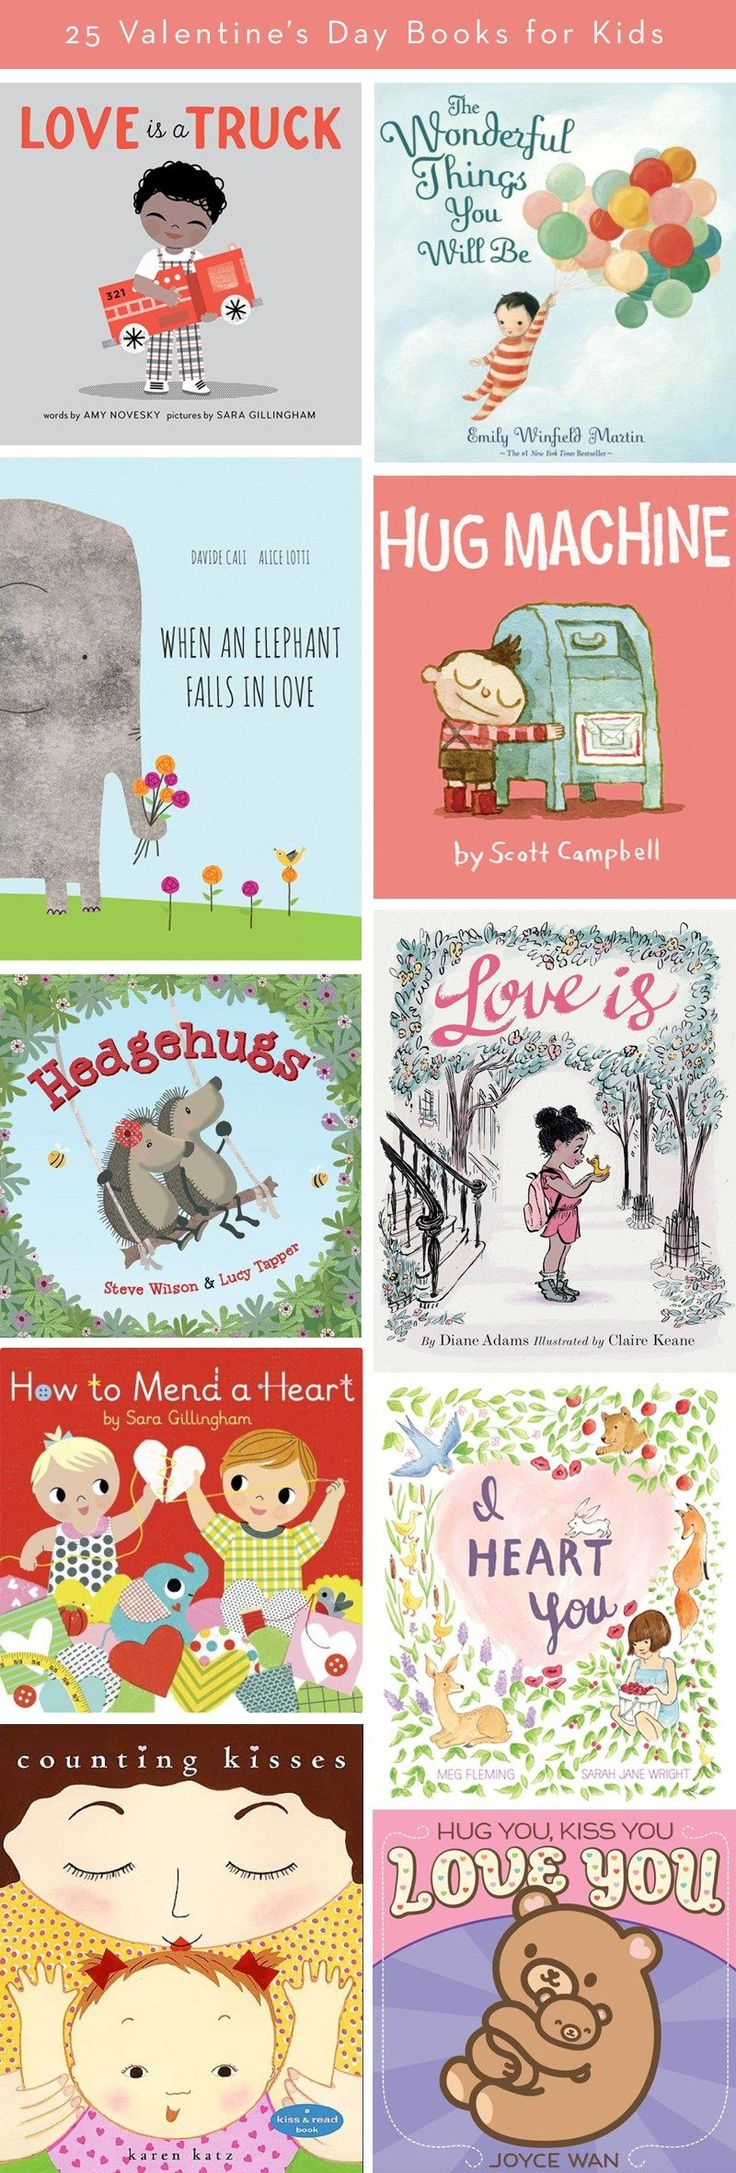 25 Modern Children's Books for Valentine's Day (and Beyond) | Thrifty Littles